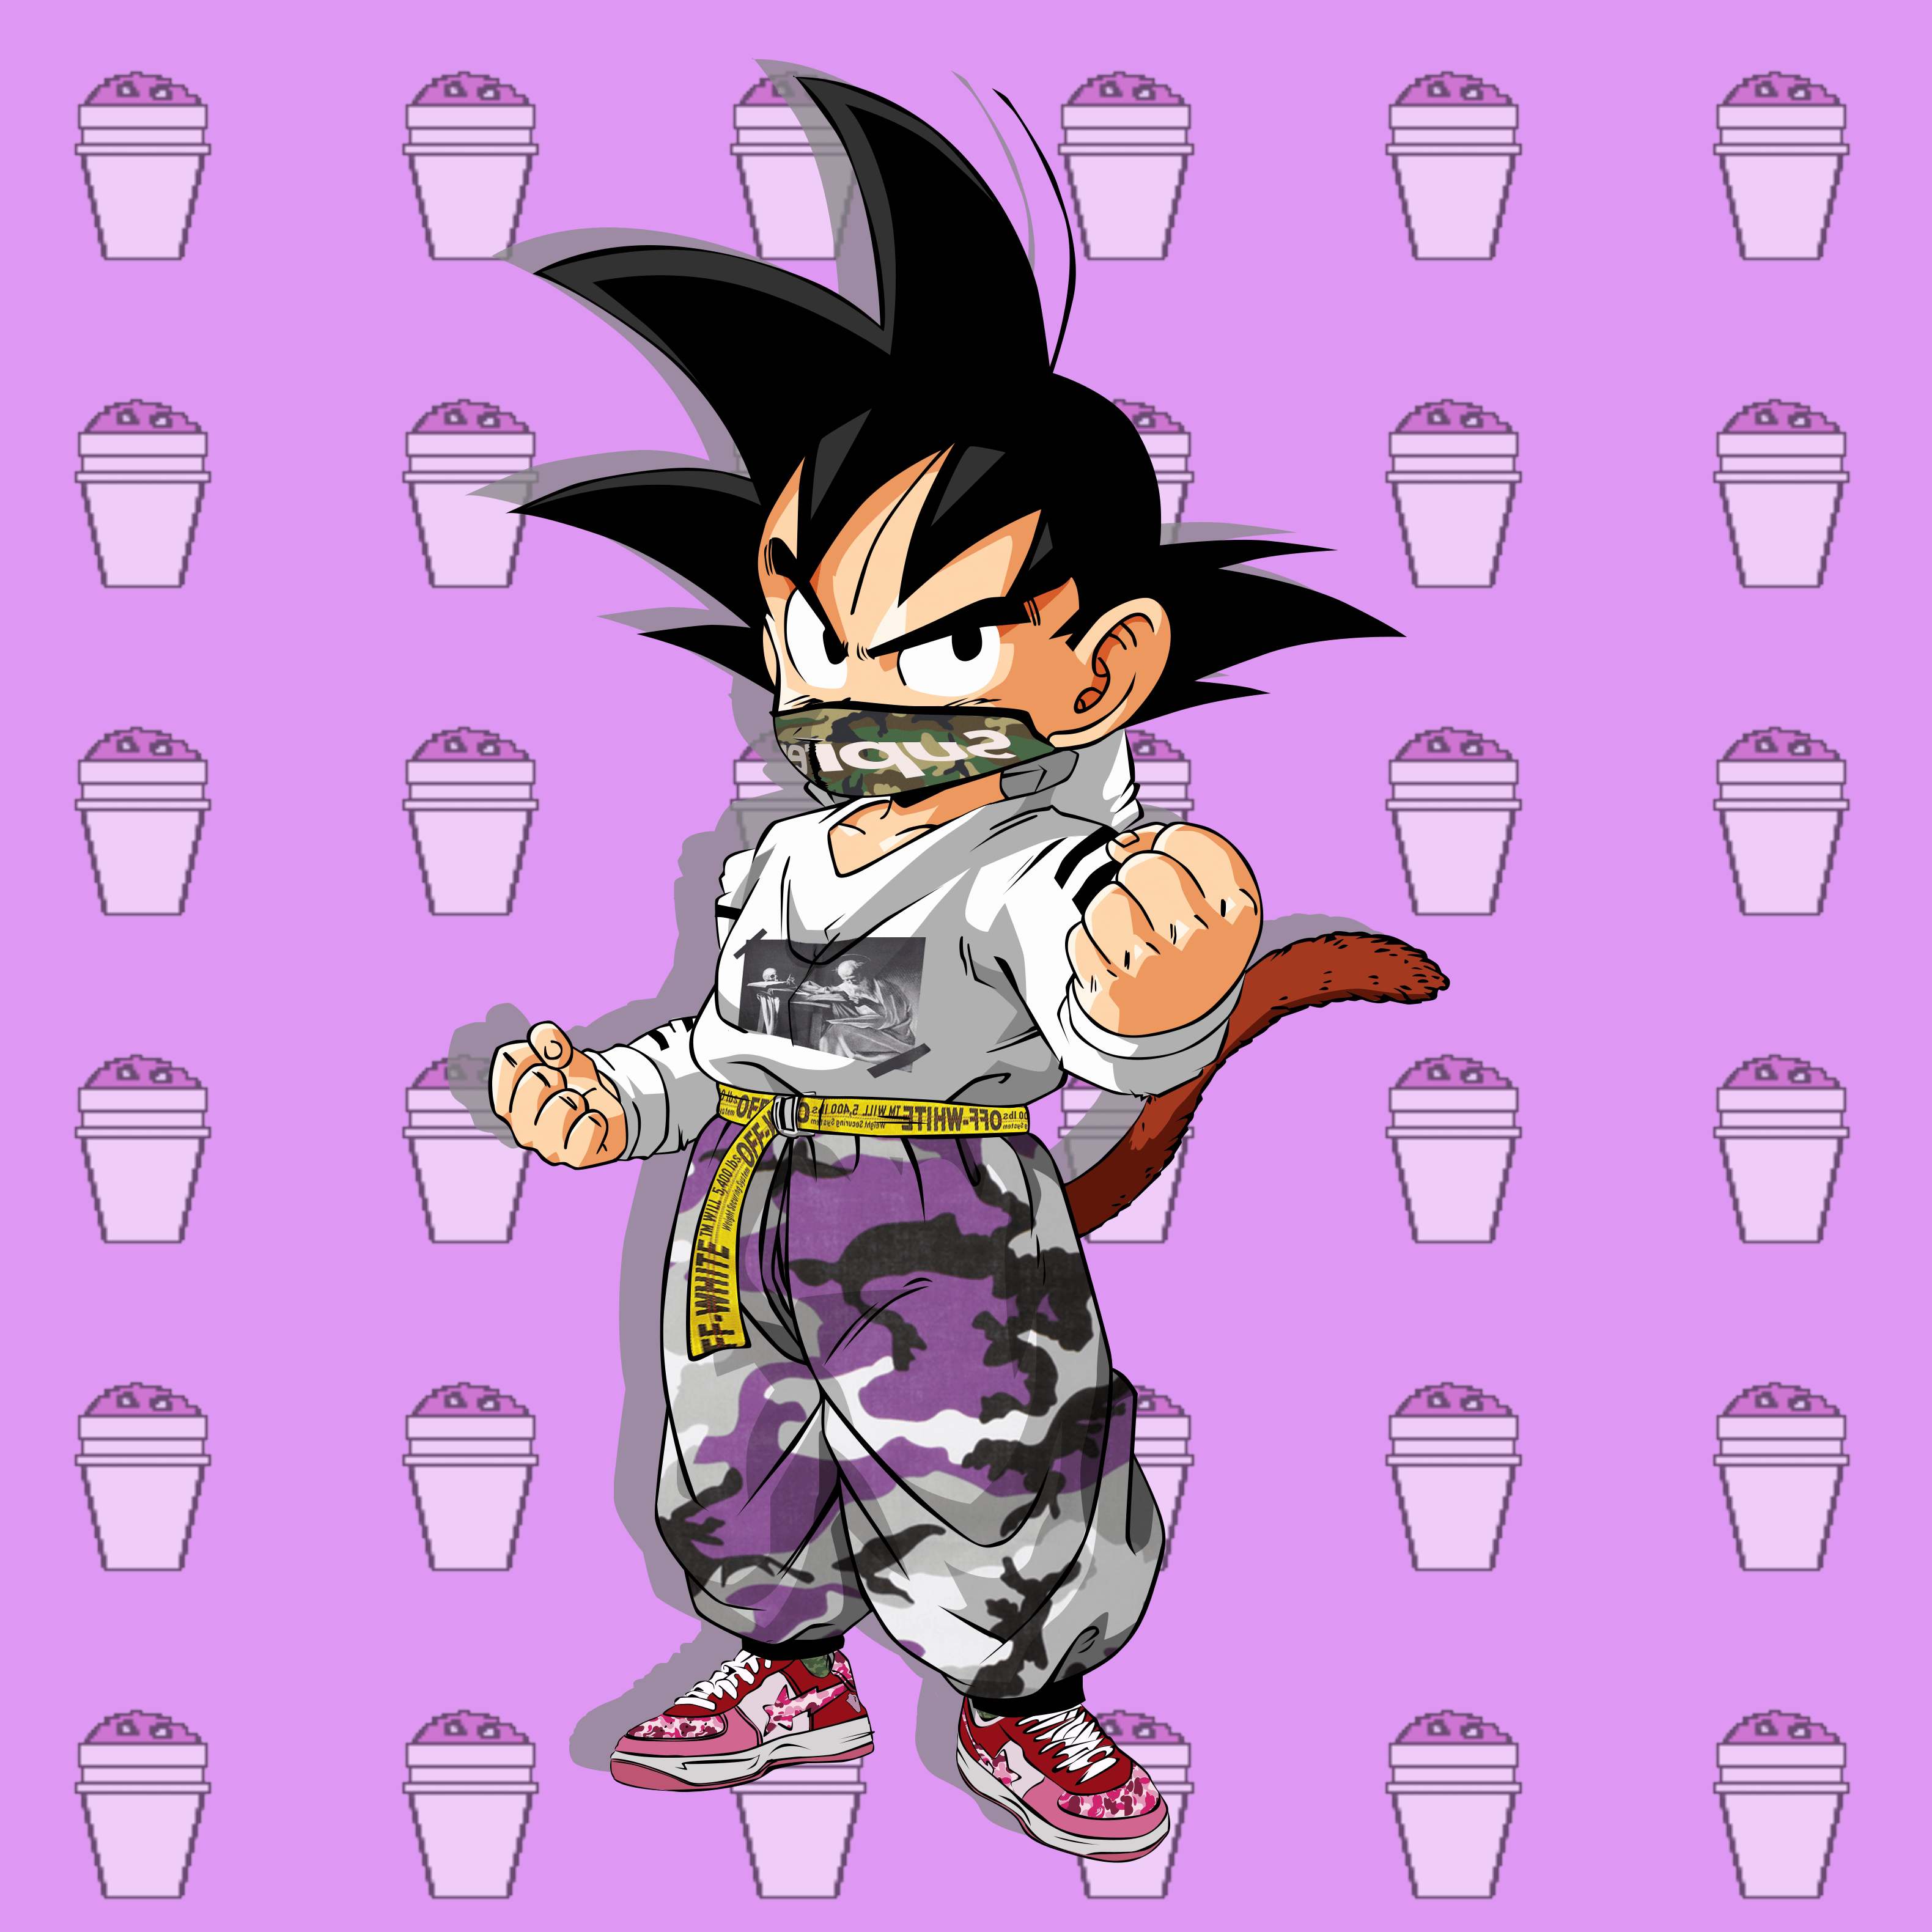 DBZ Supreme Wallpapers   Top DBZ Supreme Backgrounds 3160x3160